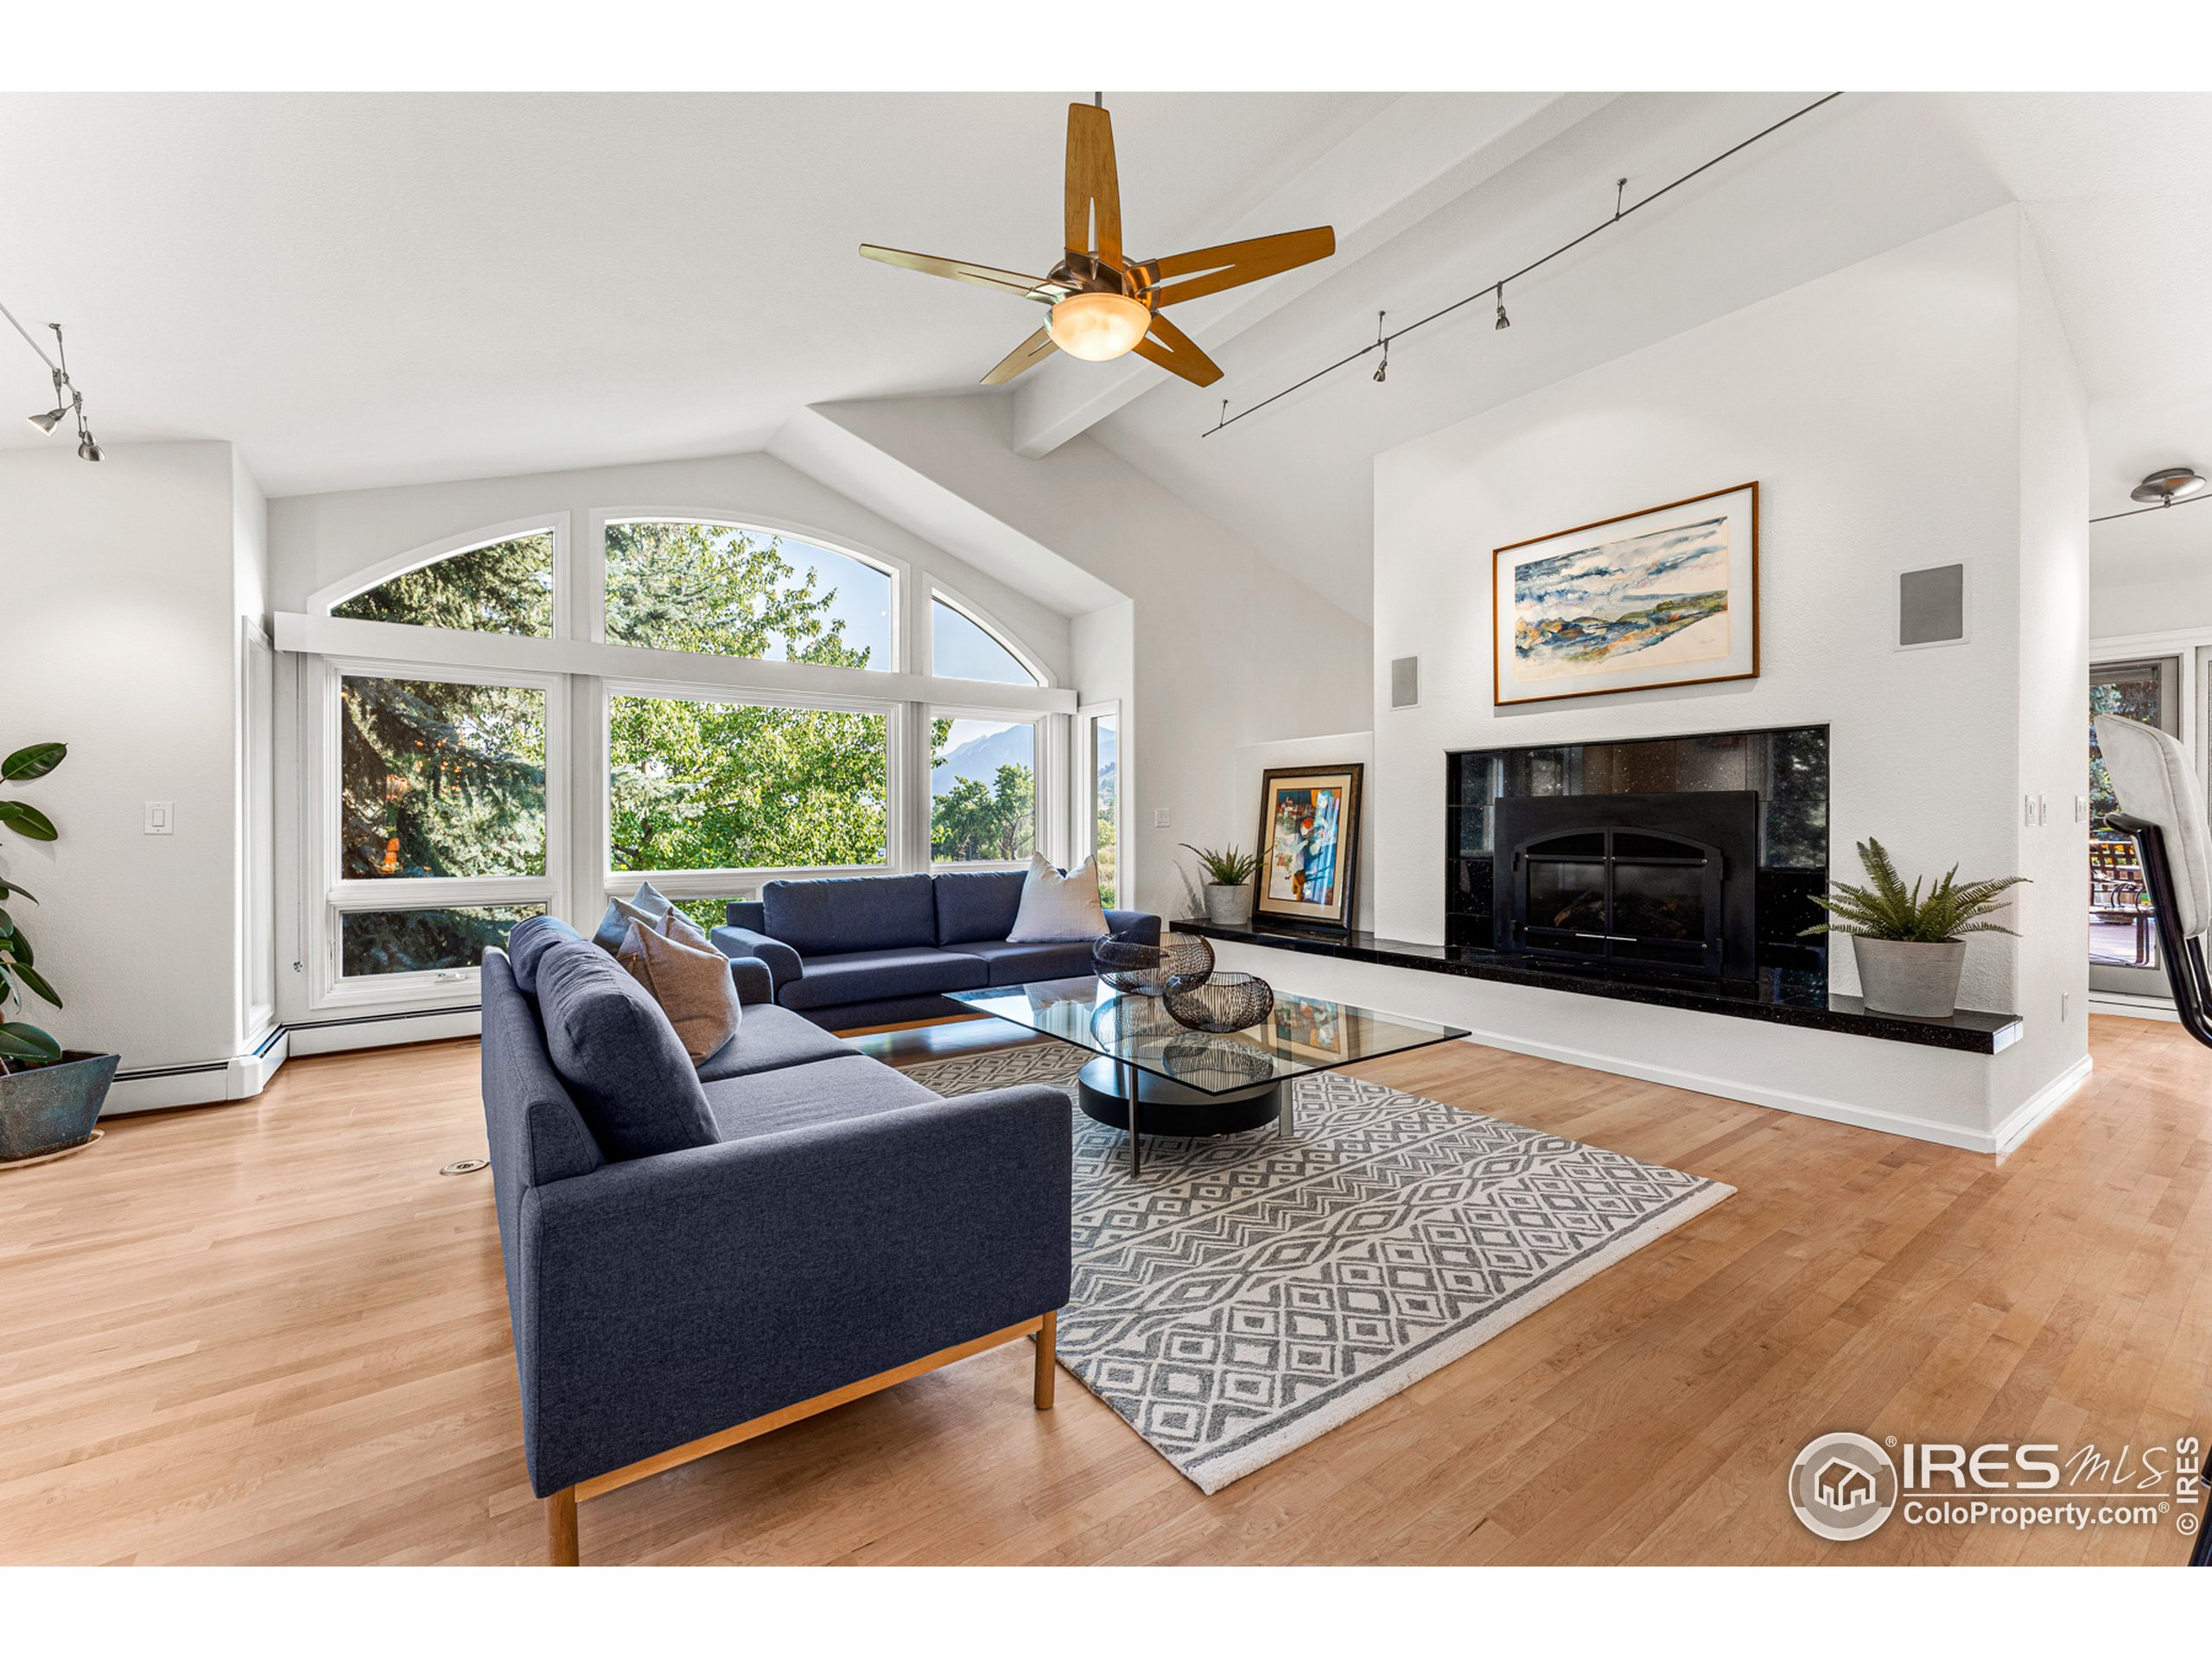 An open floorplan with valuted ceilings, sitting hearth and gas fireplace